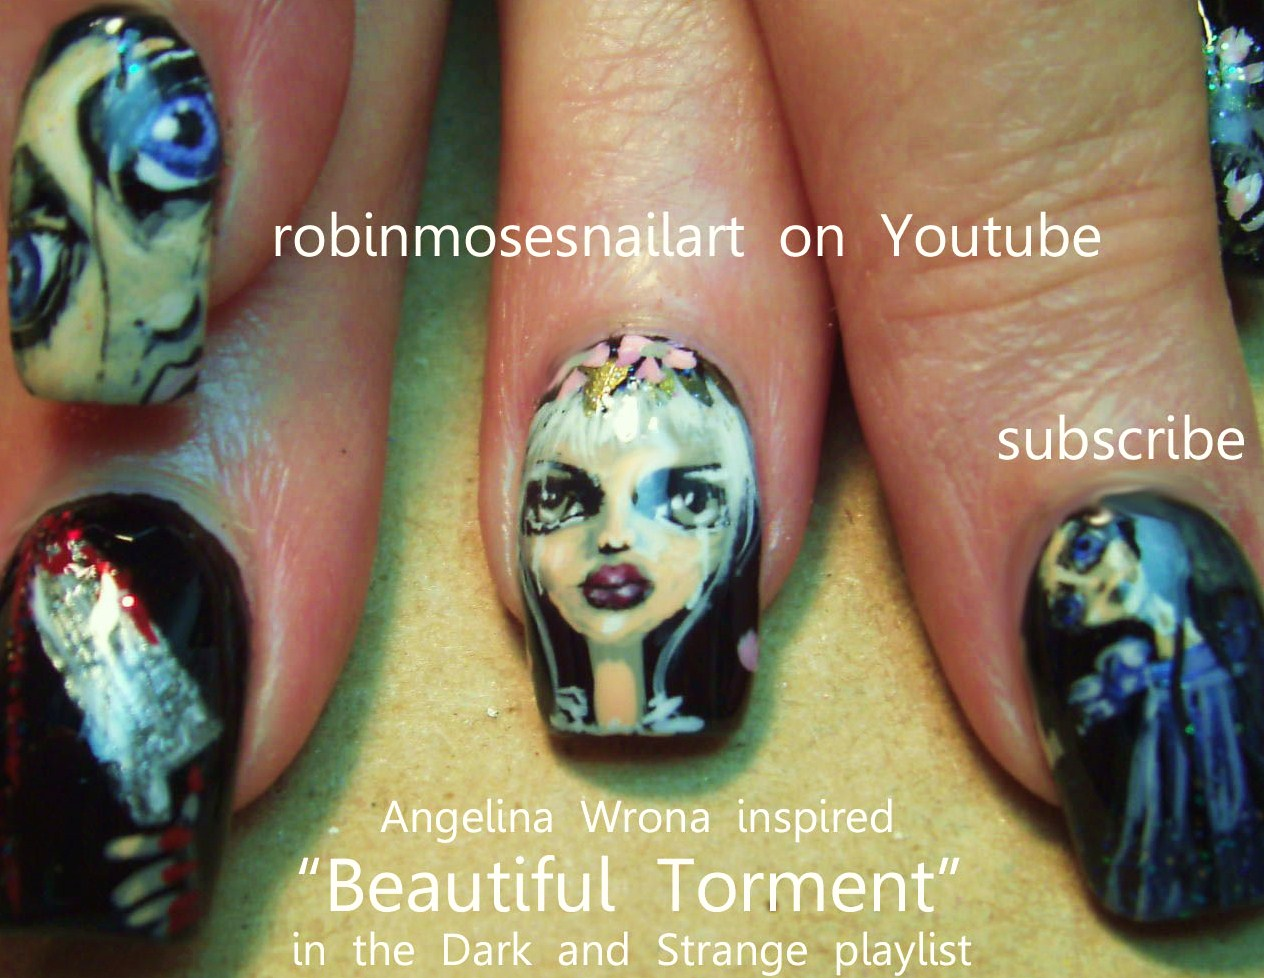 Robin moses nail art gothic nail art cute halloween nails gothic nail art cute halloween nails halloween nail art scary doll nail art angelina wrona inspired nail art black and red nail art scary nail prinsesfo Image collections